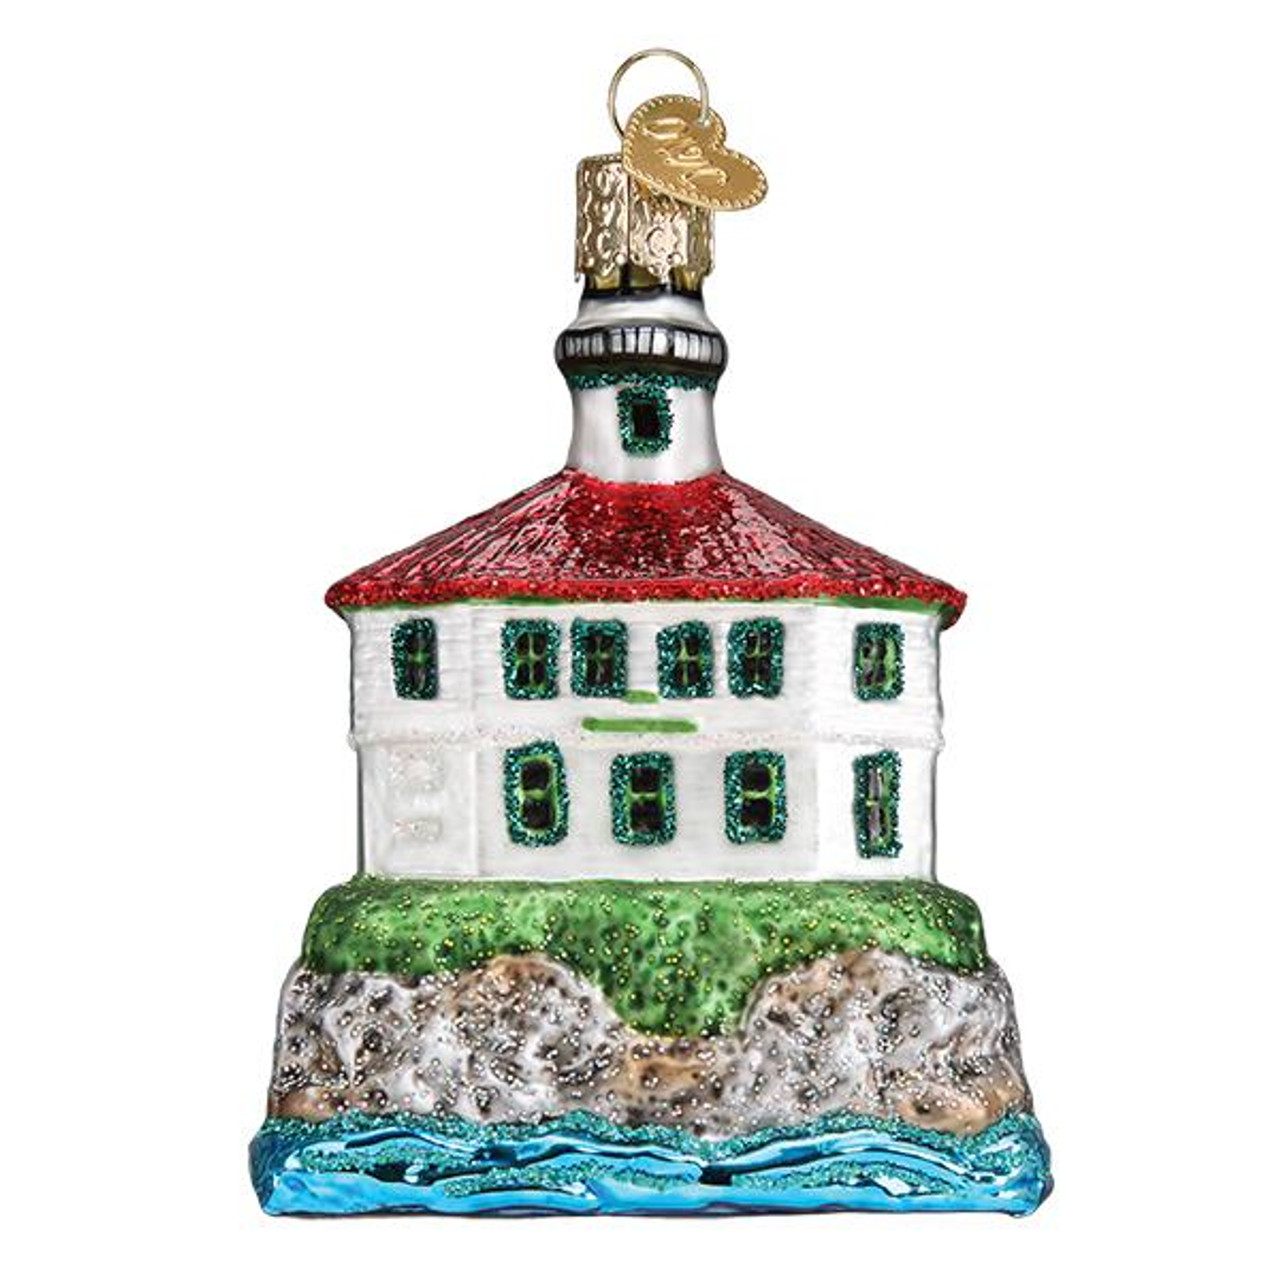 Old World Lighthouse Glass Ornament